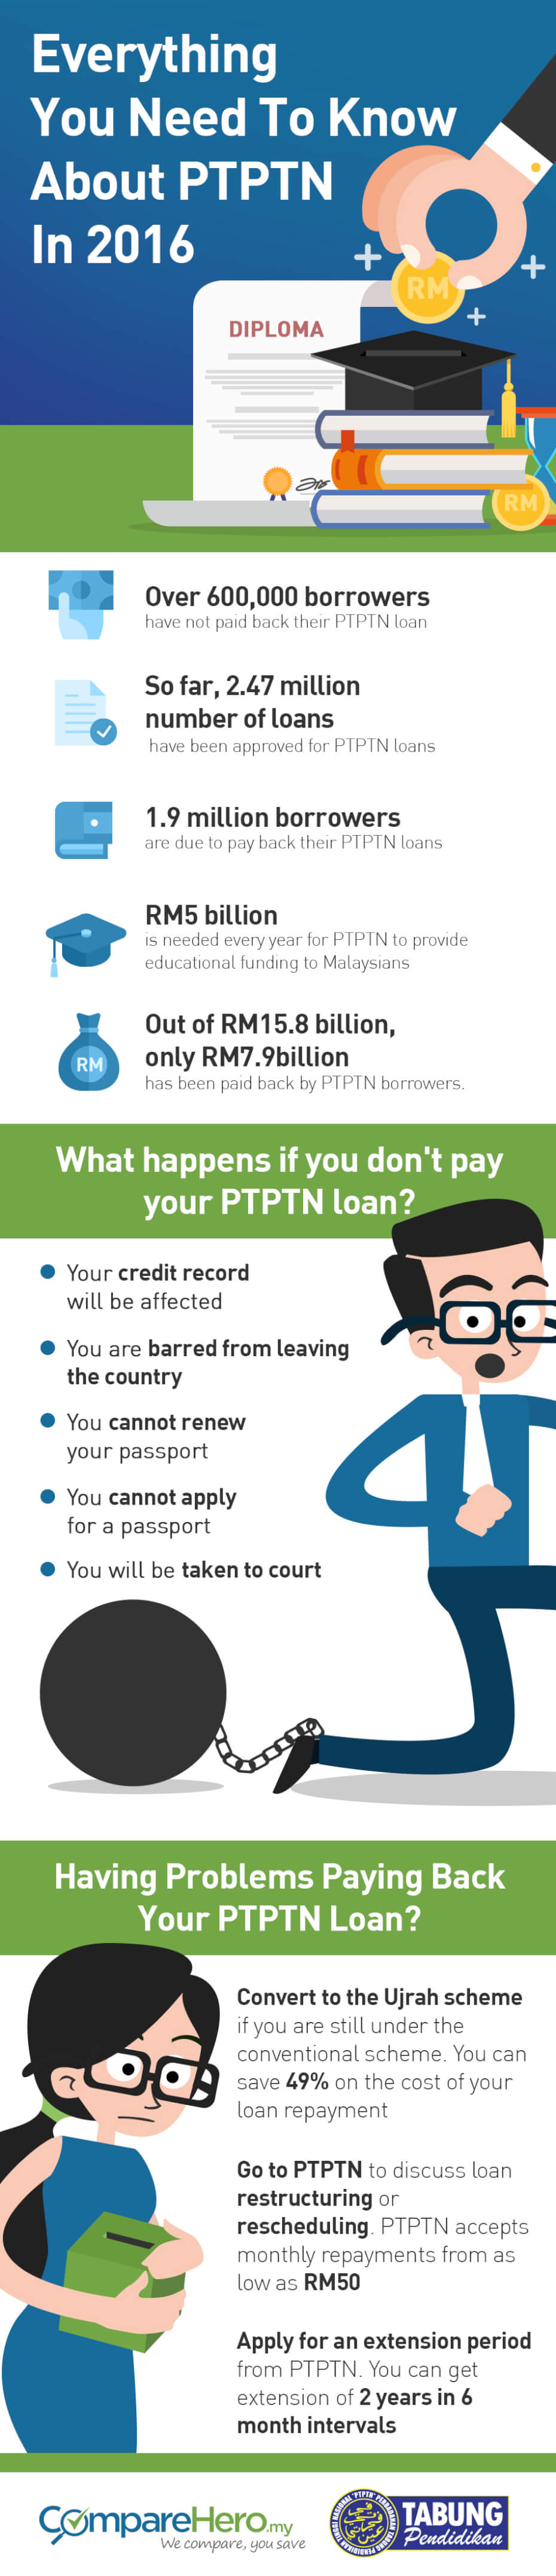 What Happens When You Don't Pay Your PTPTN loan